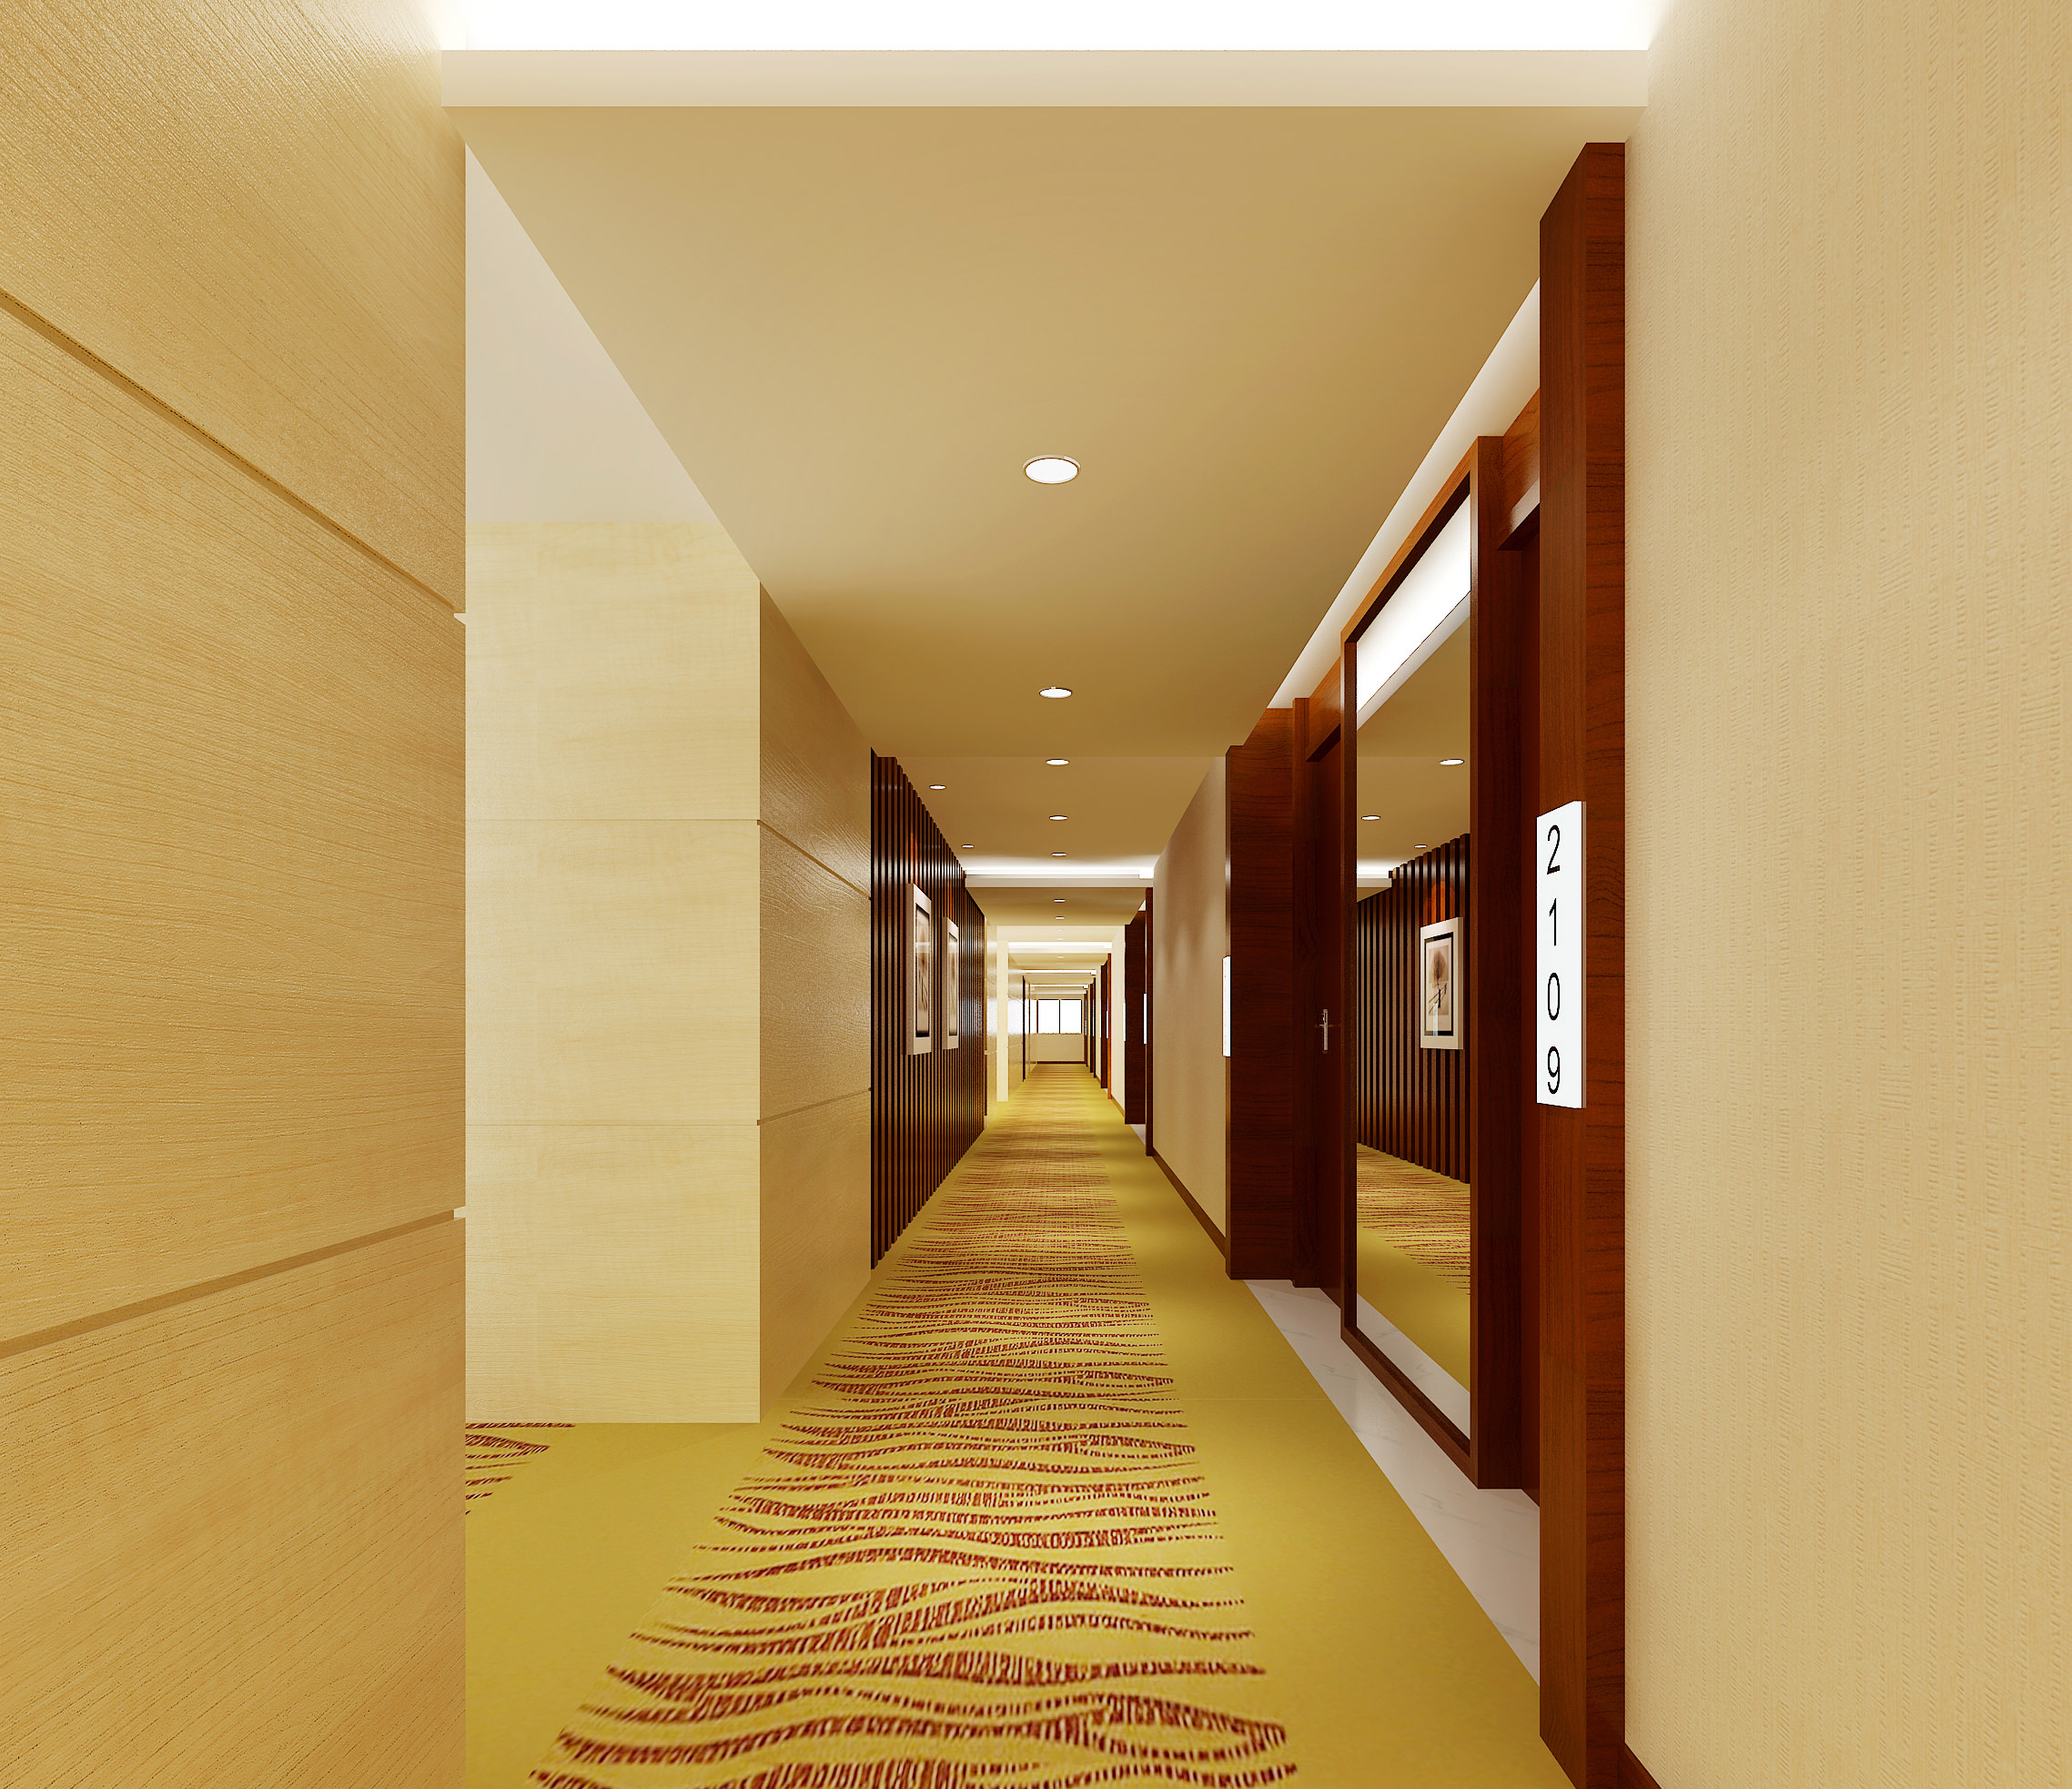 Corridor with elevator with floor decor 3d model max - Decor corridor ...